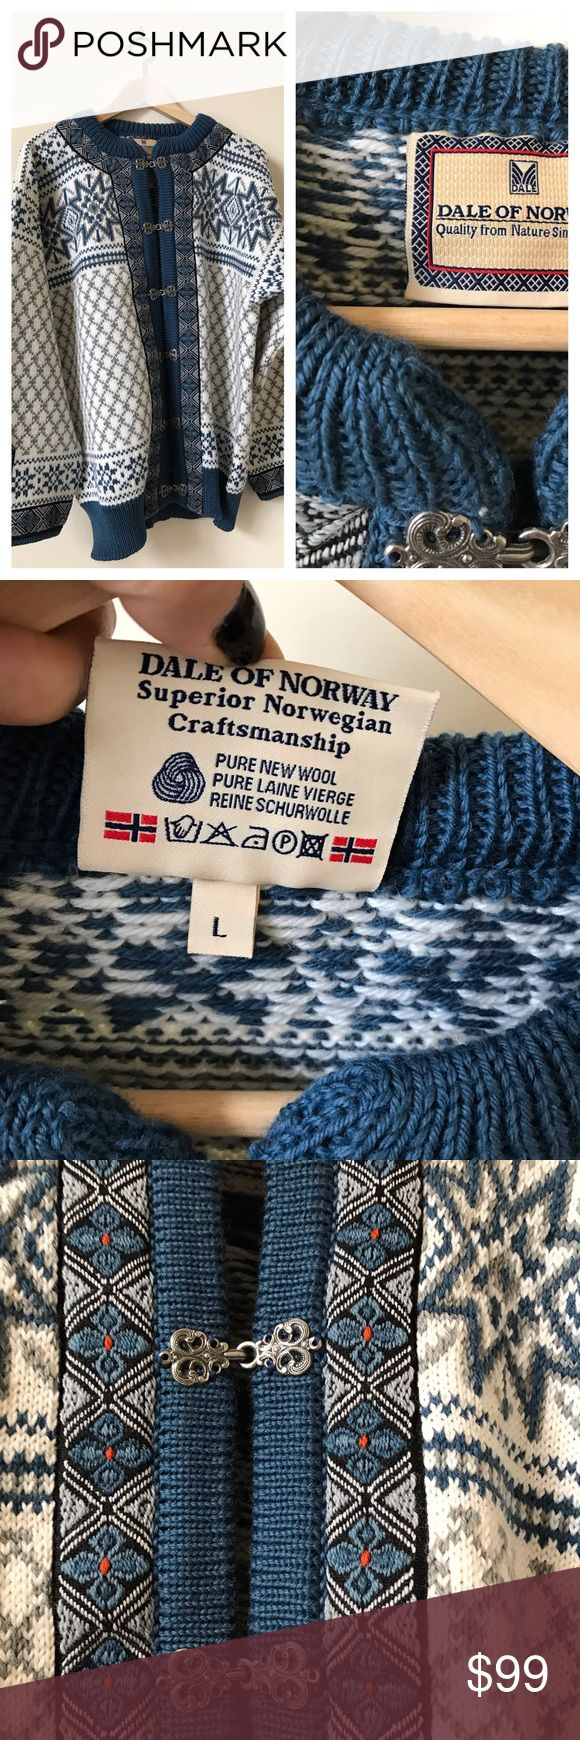 NWOT Dale of Norway Wool Sweater Dale of Norway superior Norwegian wool sweater. GORGEOUS craftsmanship. Pure New Wool. Blue sweater with beautiful print. Brand new without tags, sweater is a size large. Retails for over $400! Dale of Norway Sweaters